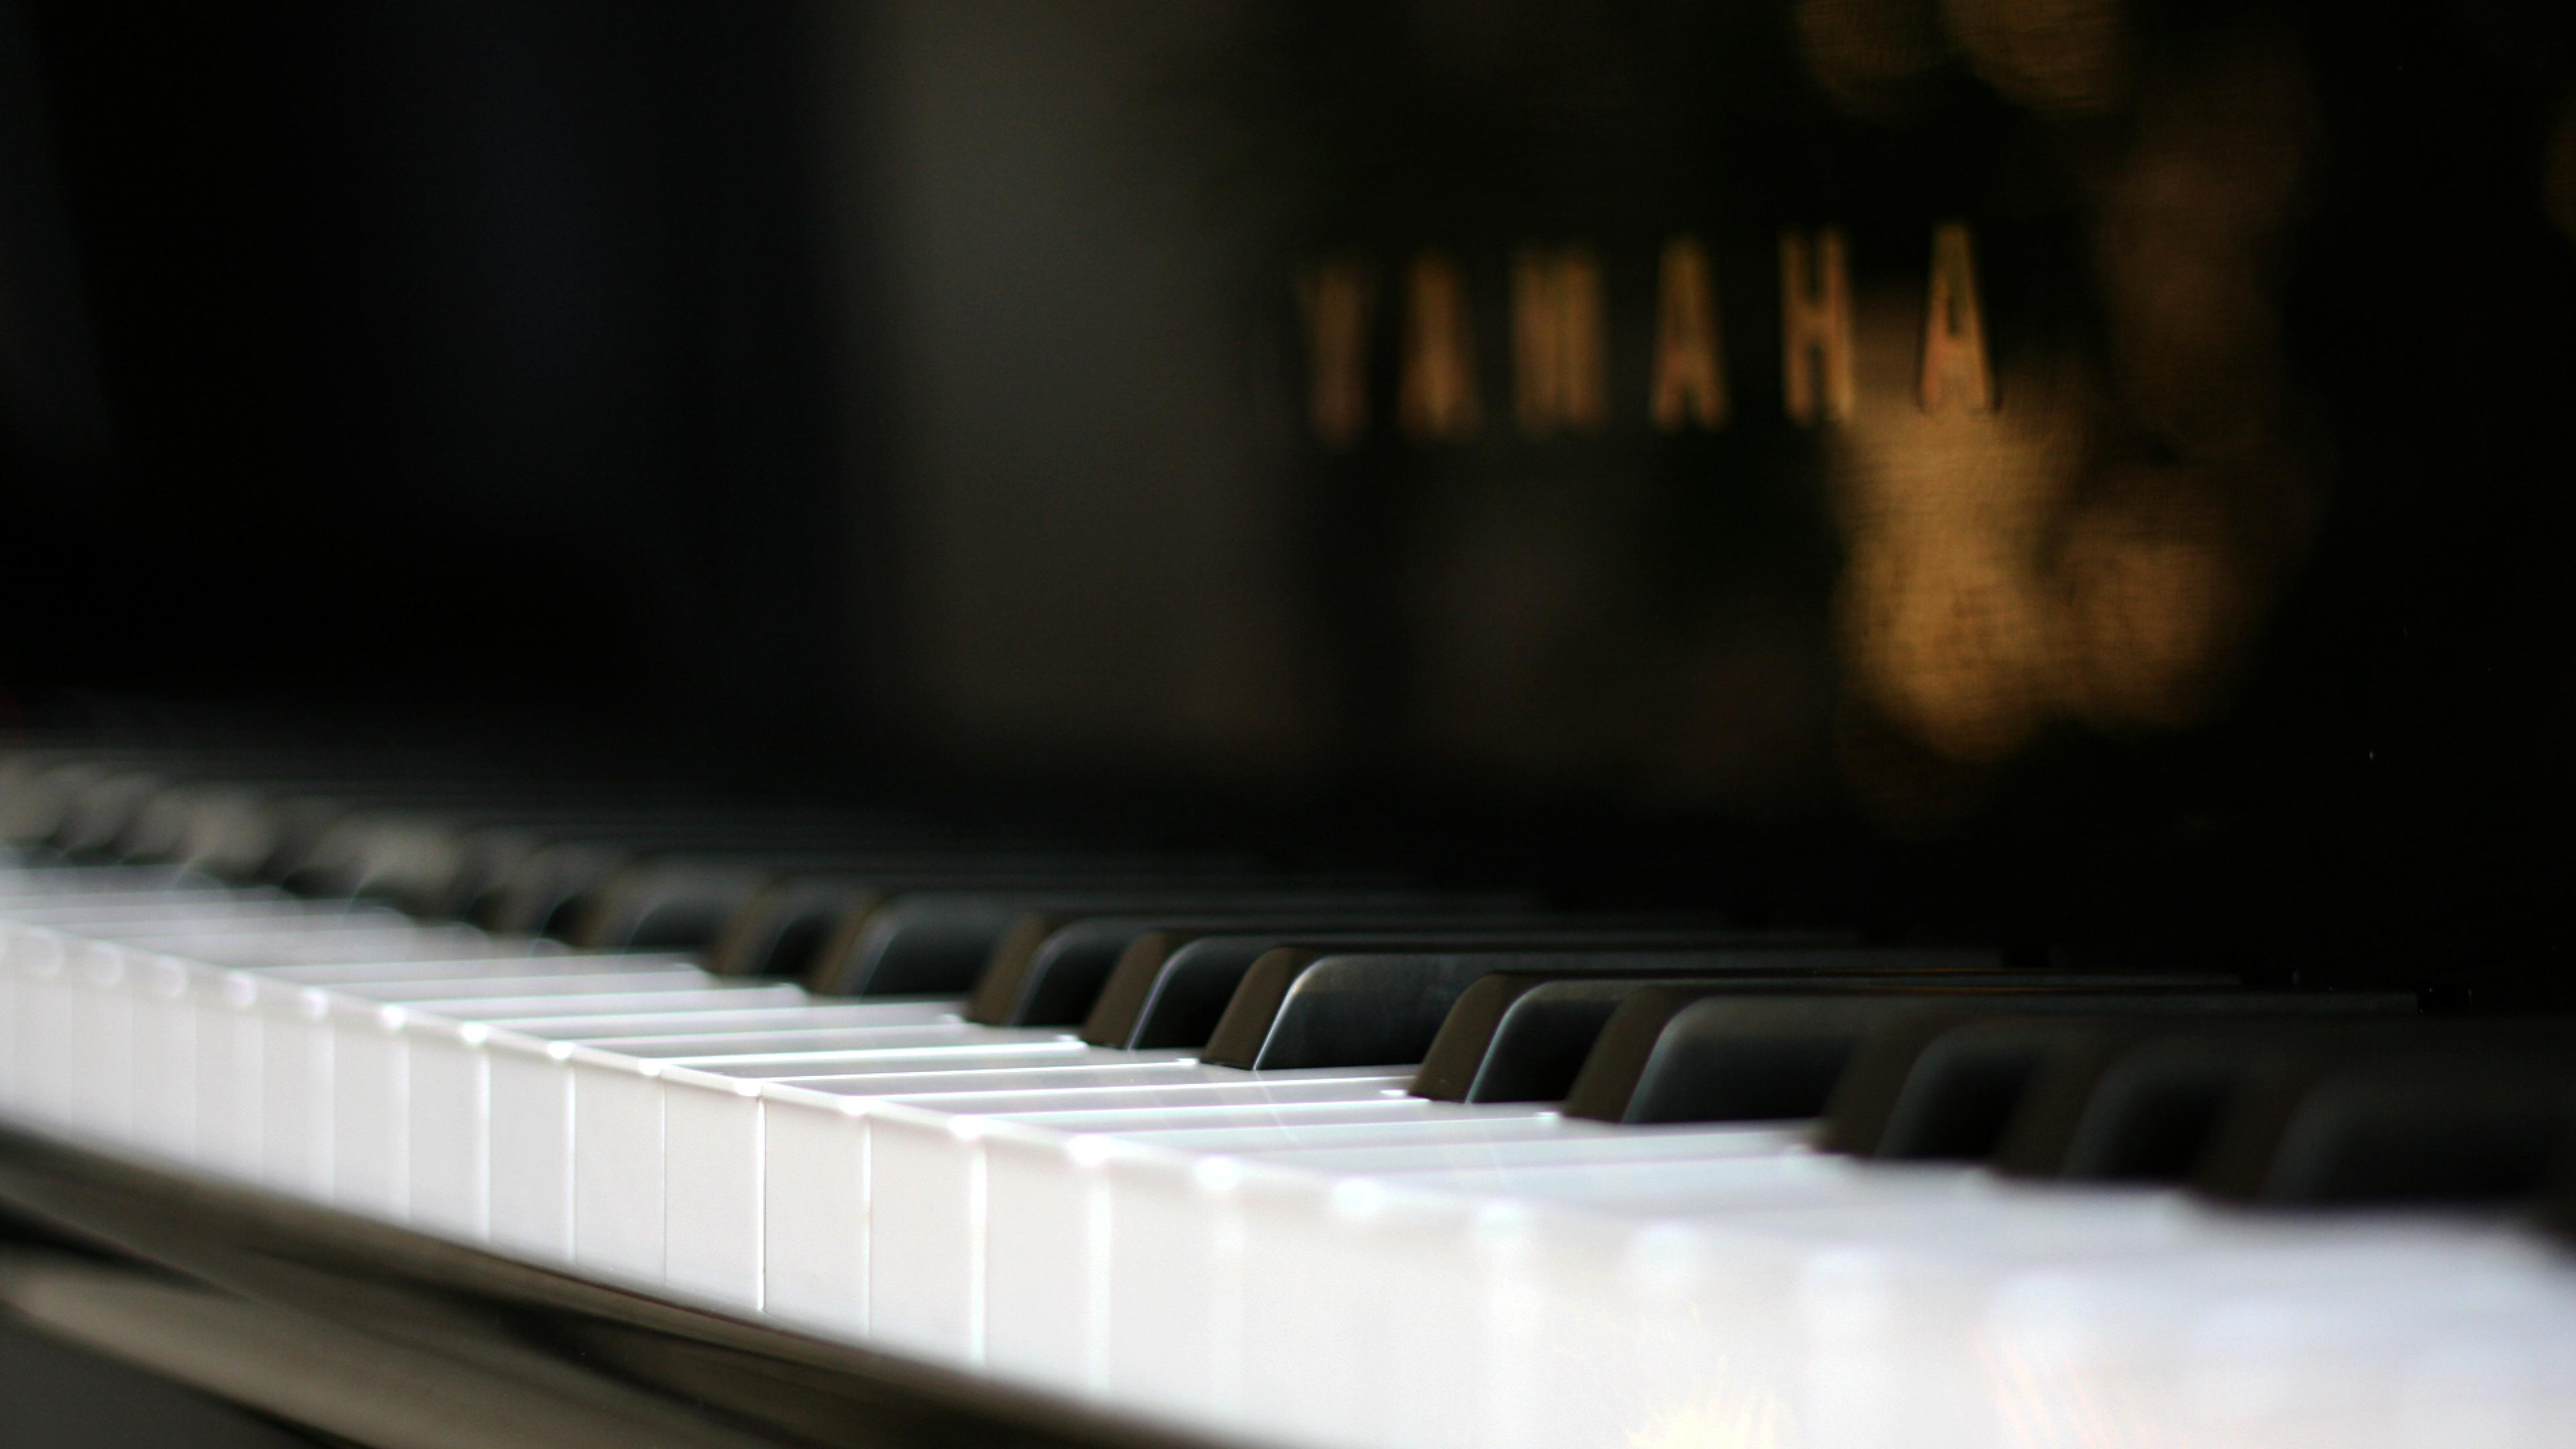 piano wallpapers high quality free